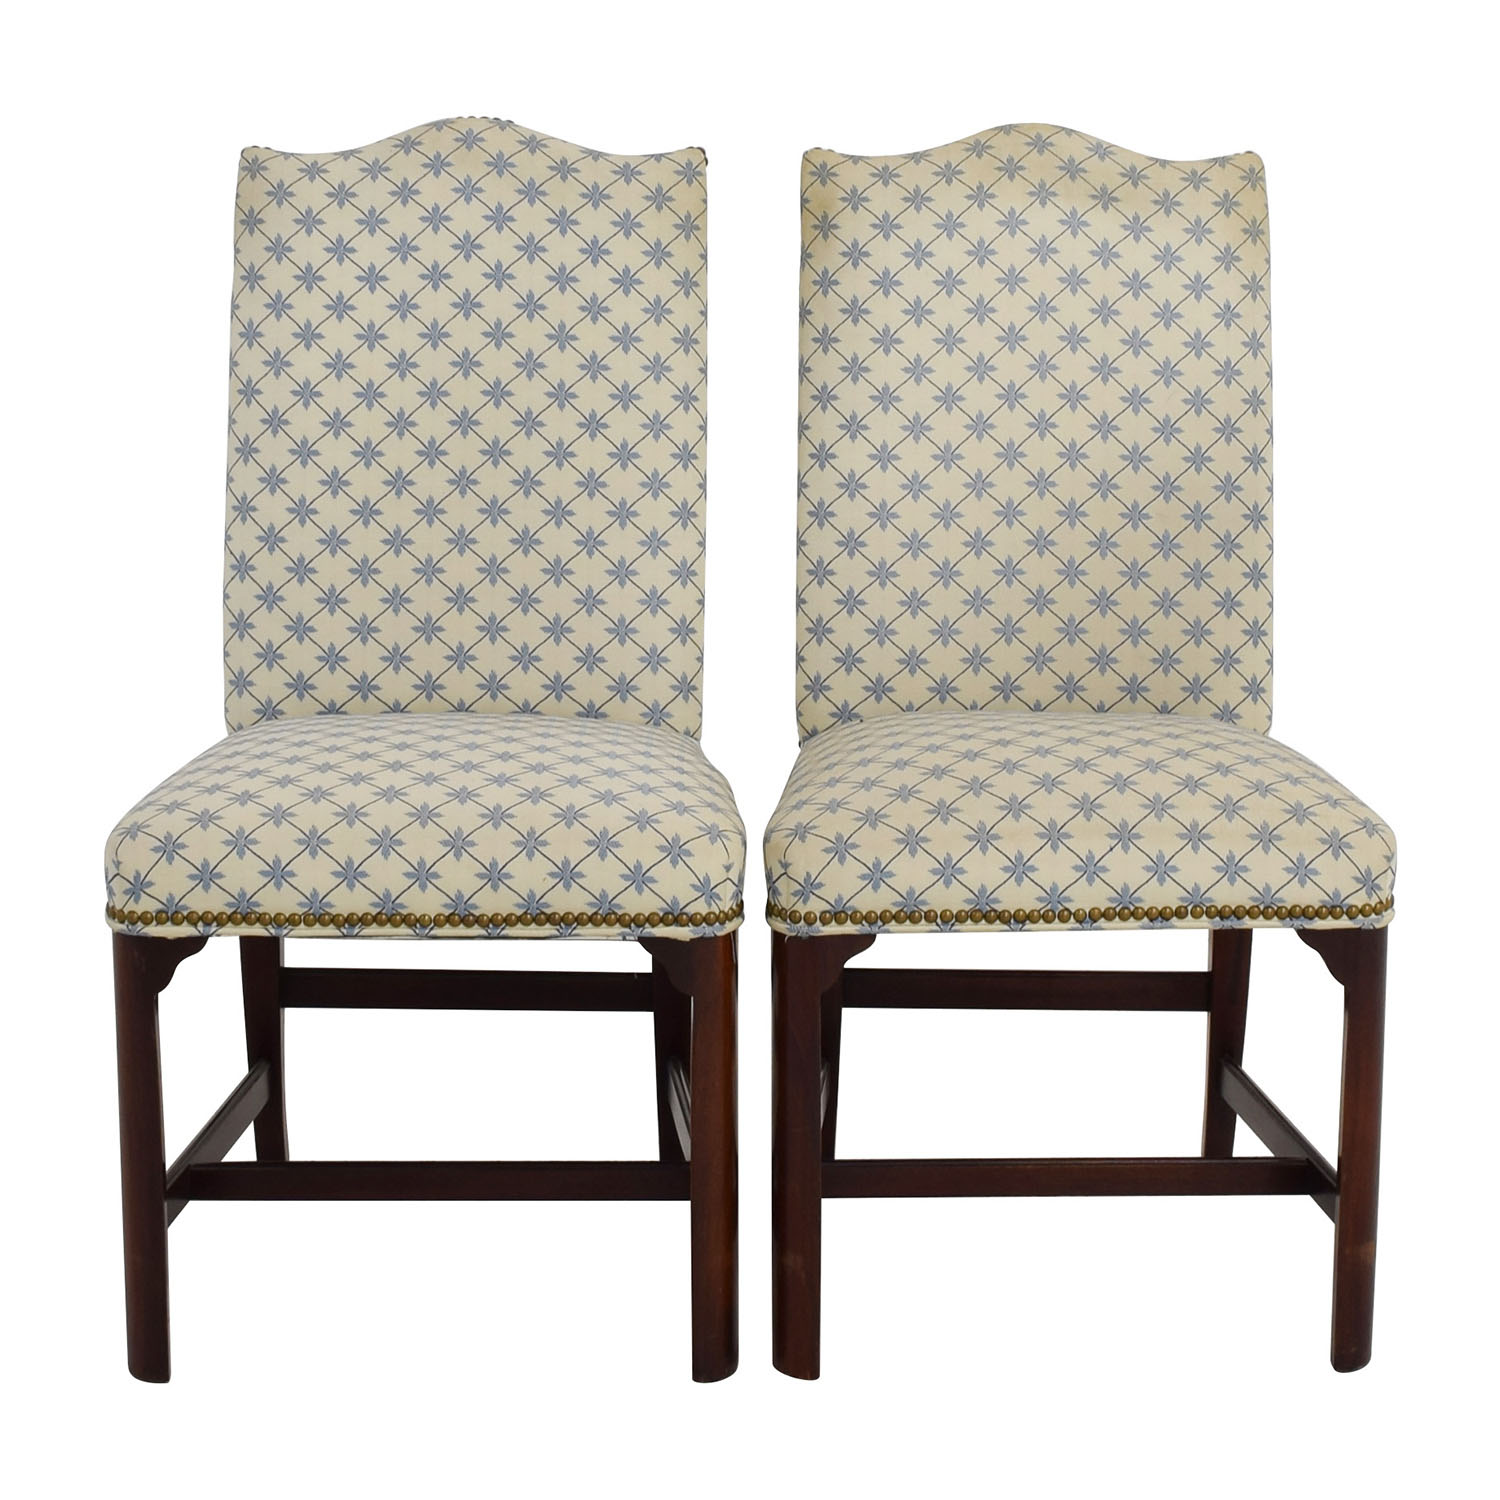 Hickory Chair Hickory Chair Bespoke Upholstered Occasional Chairs price